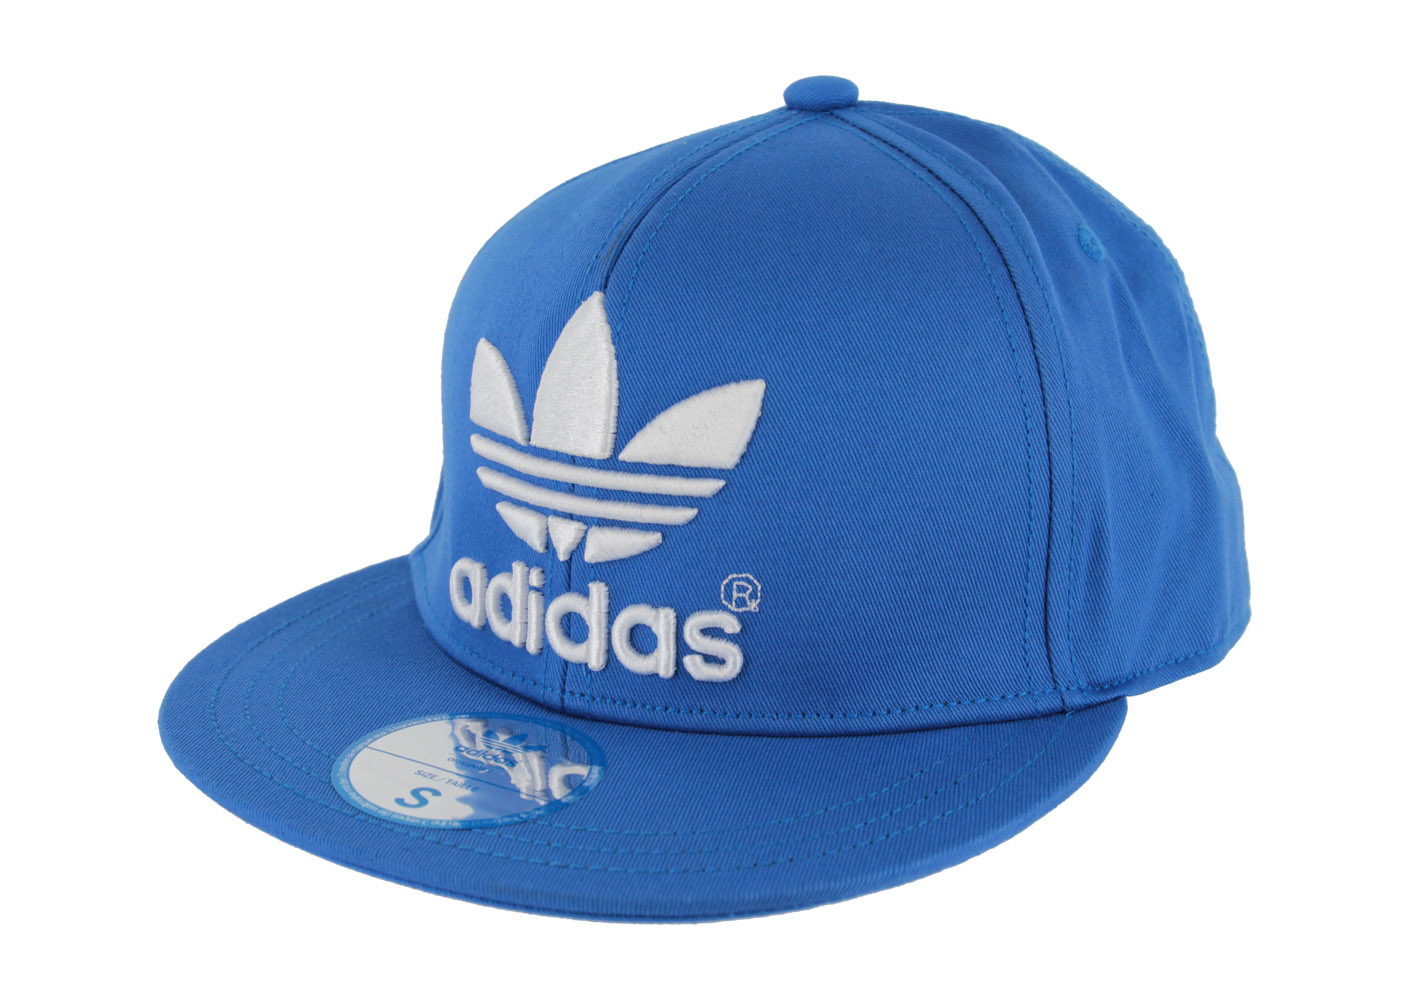 adidas casquette en twill sport homme. Black Bedroom Furniture Sets. Home Design Ideas